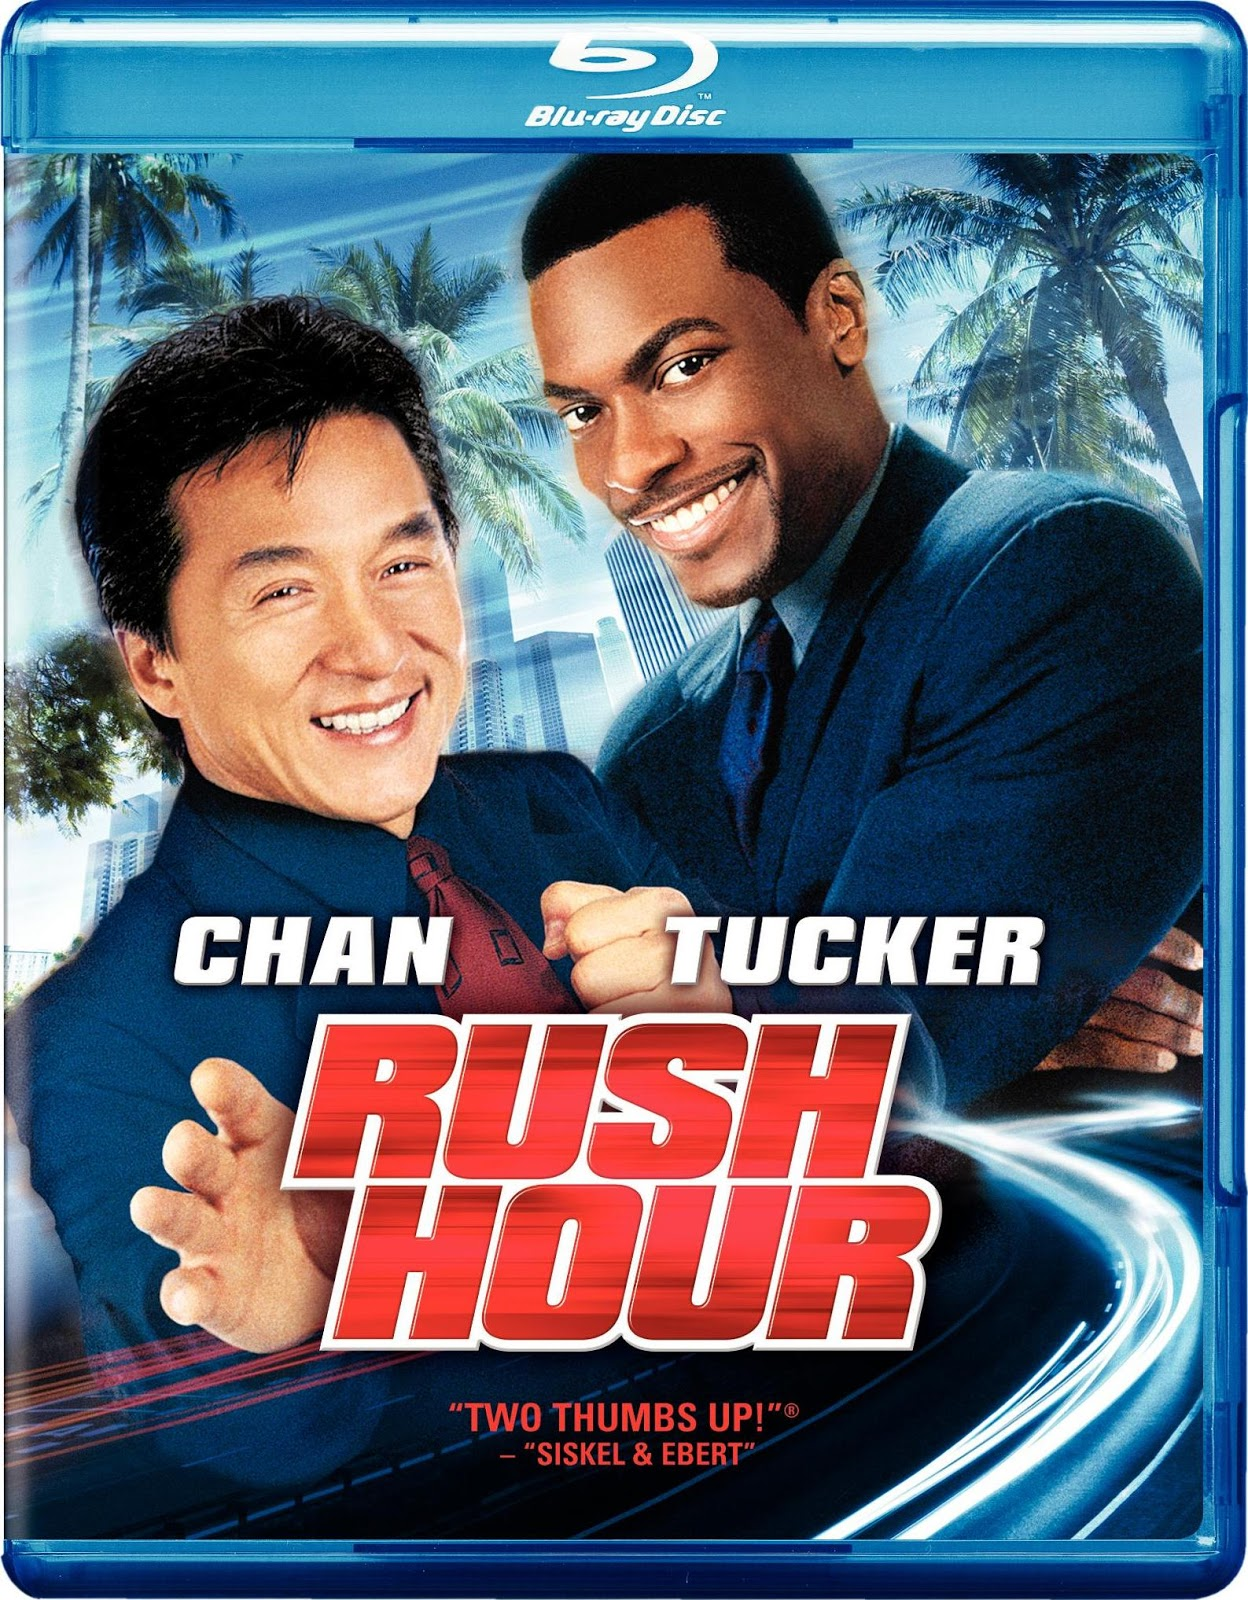 Rush Hour 1998 Dual Audio 720p BRRip 1GB world4ufree.ws , hollywood movie Barbie Rush Hour 1998 hindi dubbed dual audio hindi english languages original audio 720p BRRip hdrip free download 700mb or watch online at world4ufree.ws